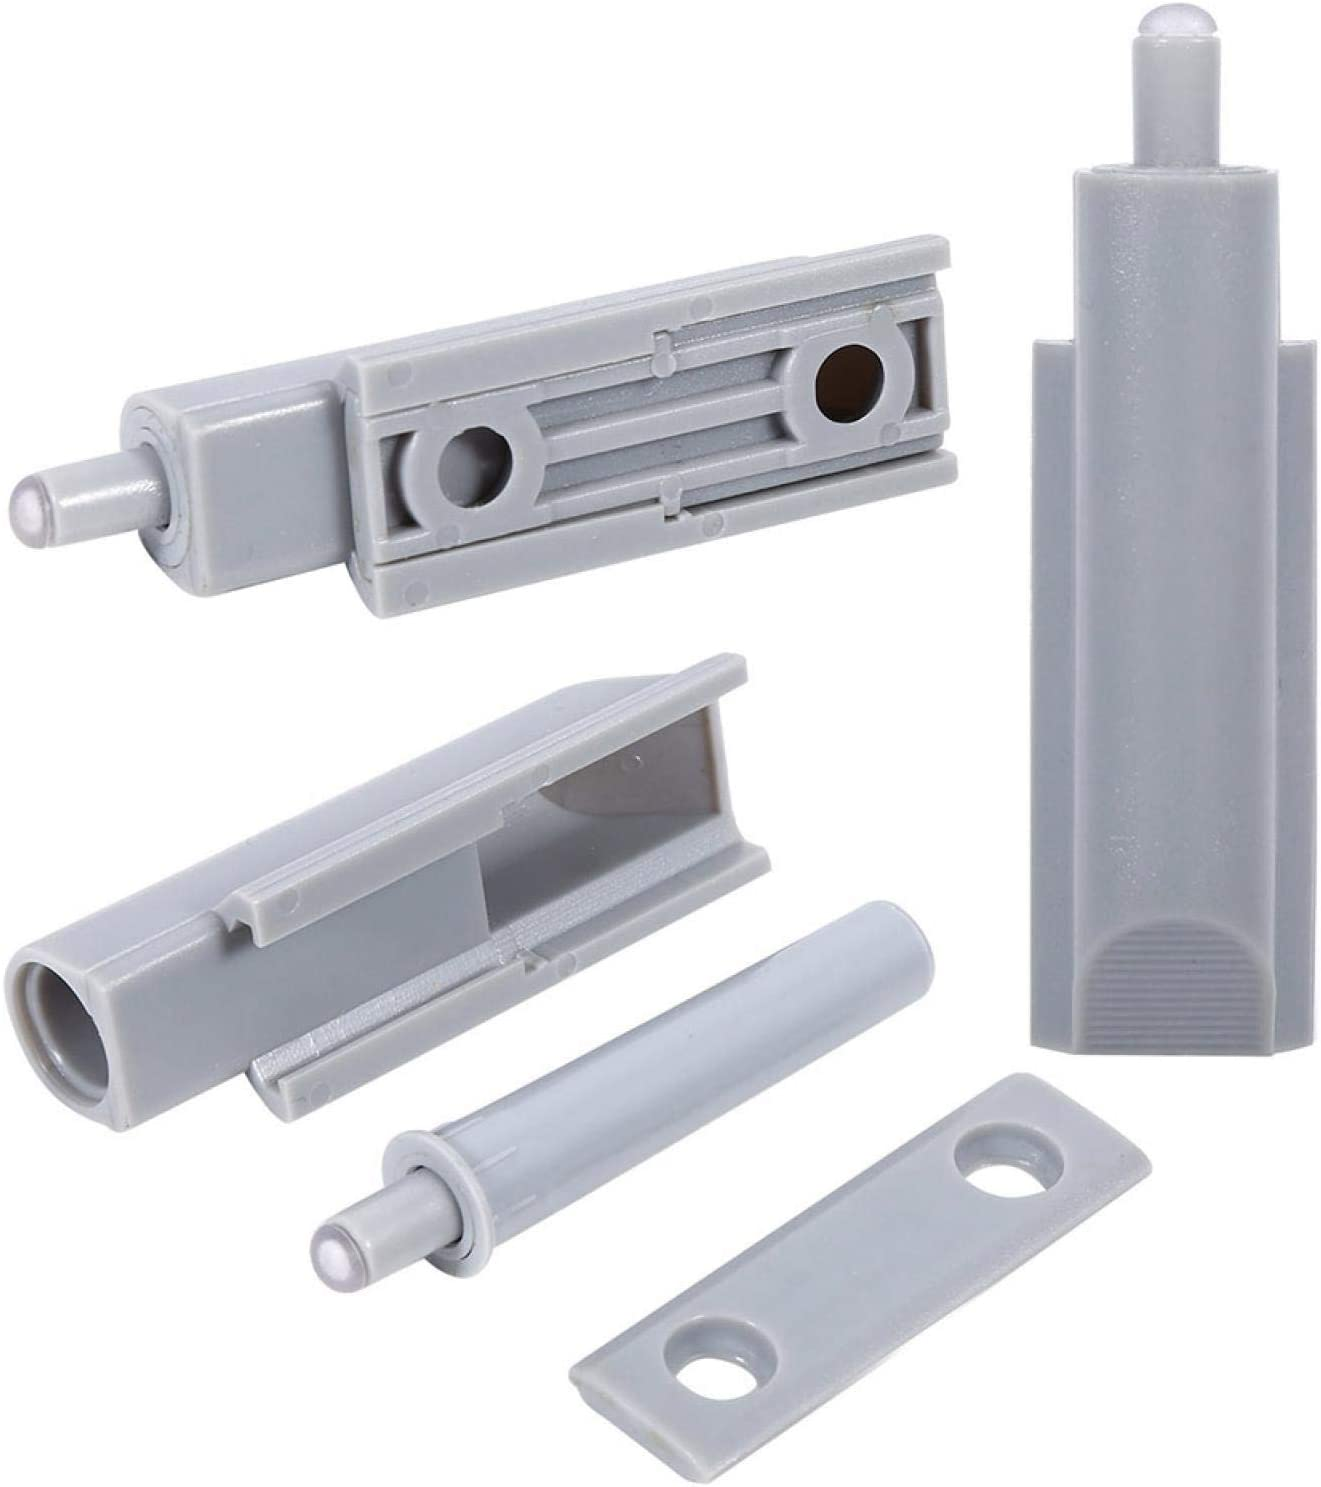 ABS Case Sales of Directly managed store SALE items from new works Door Cabinet Drawer Hinge Push Open Bu System Damper to